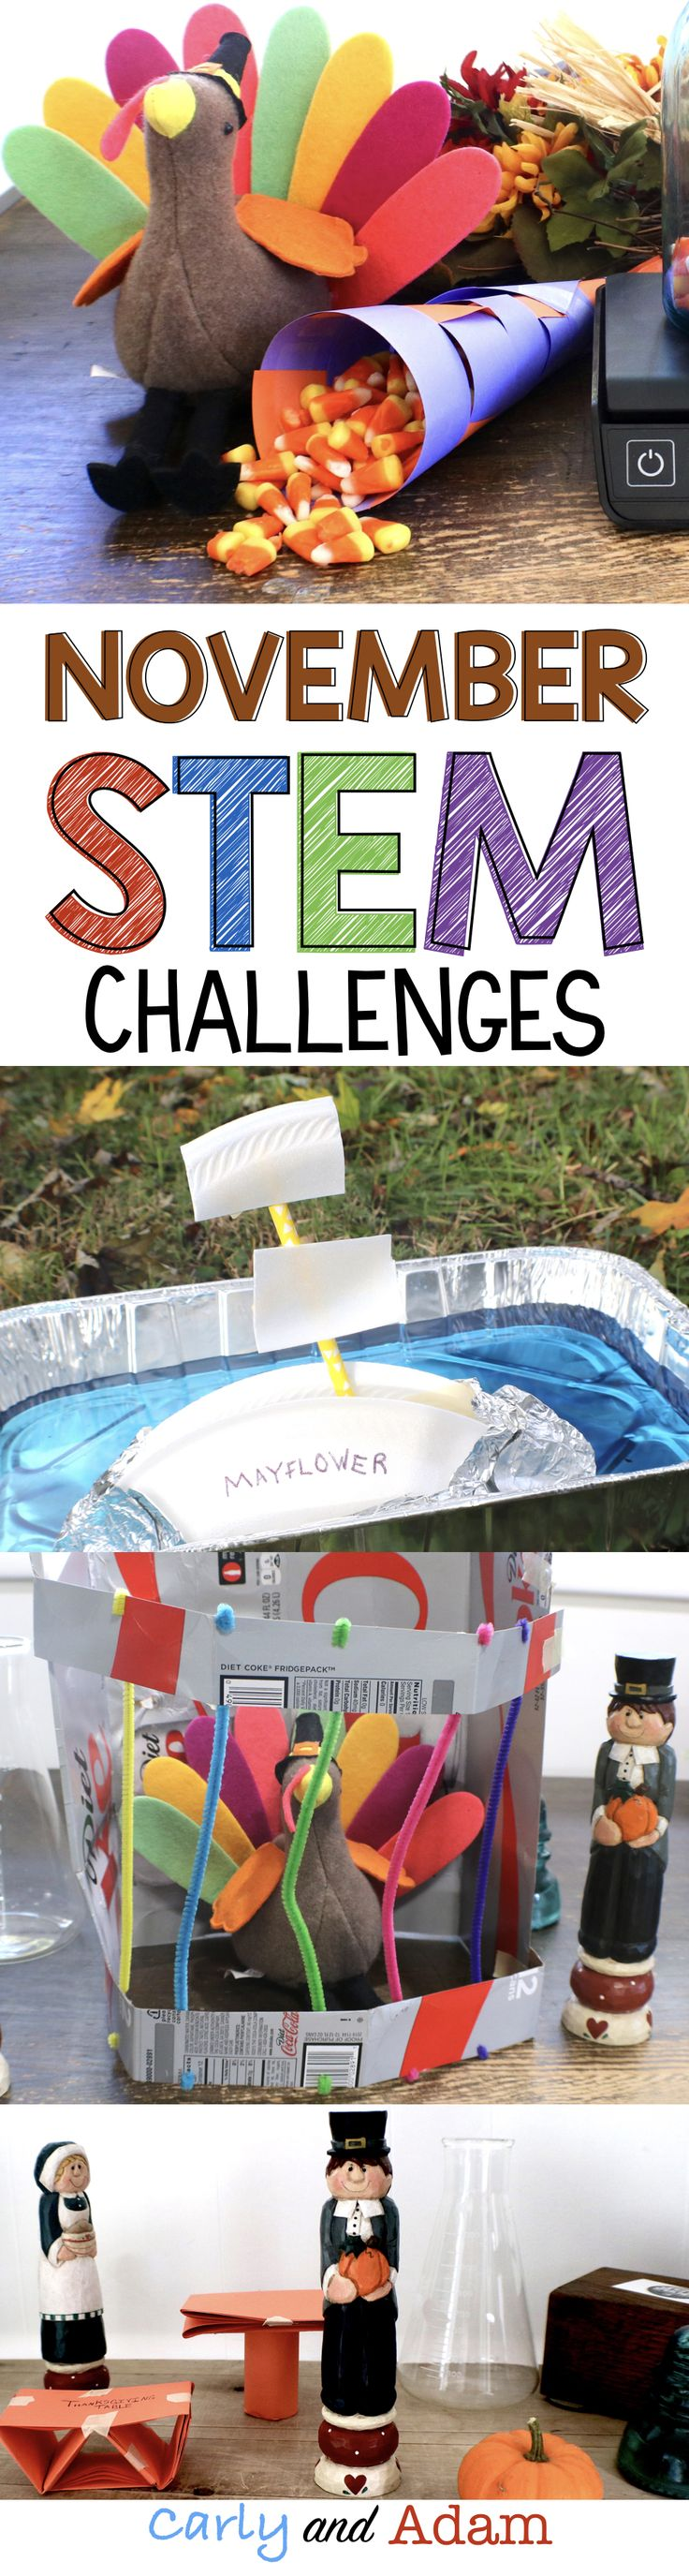 November Thanksgiving STEM Challenges (4 Fall Themed STEM Challenges)